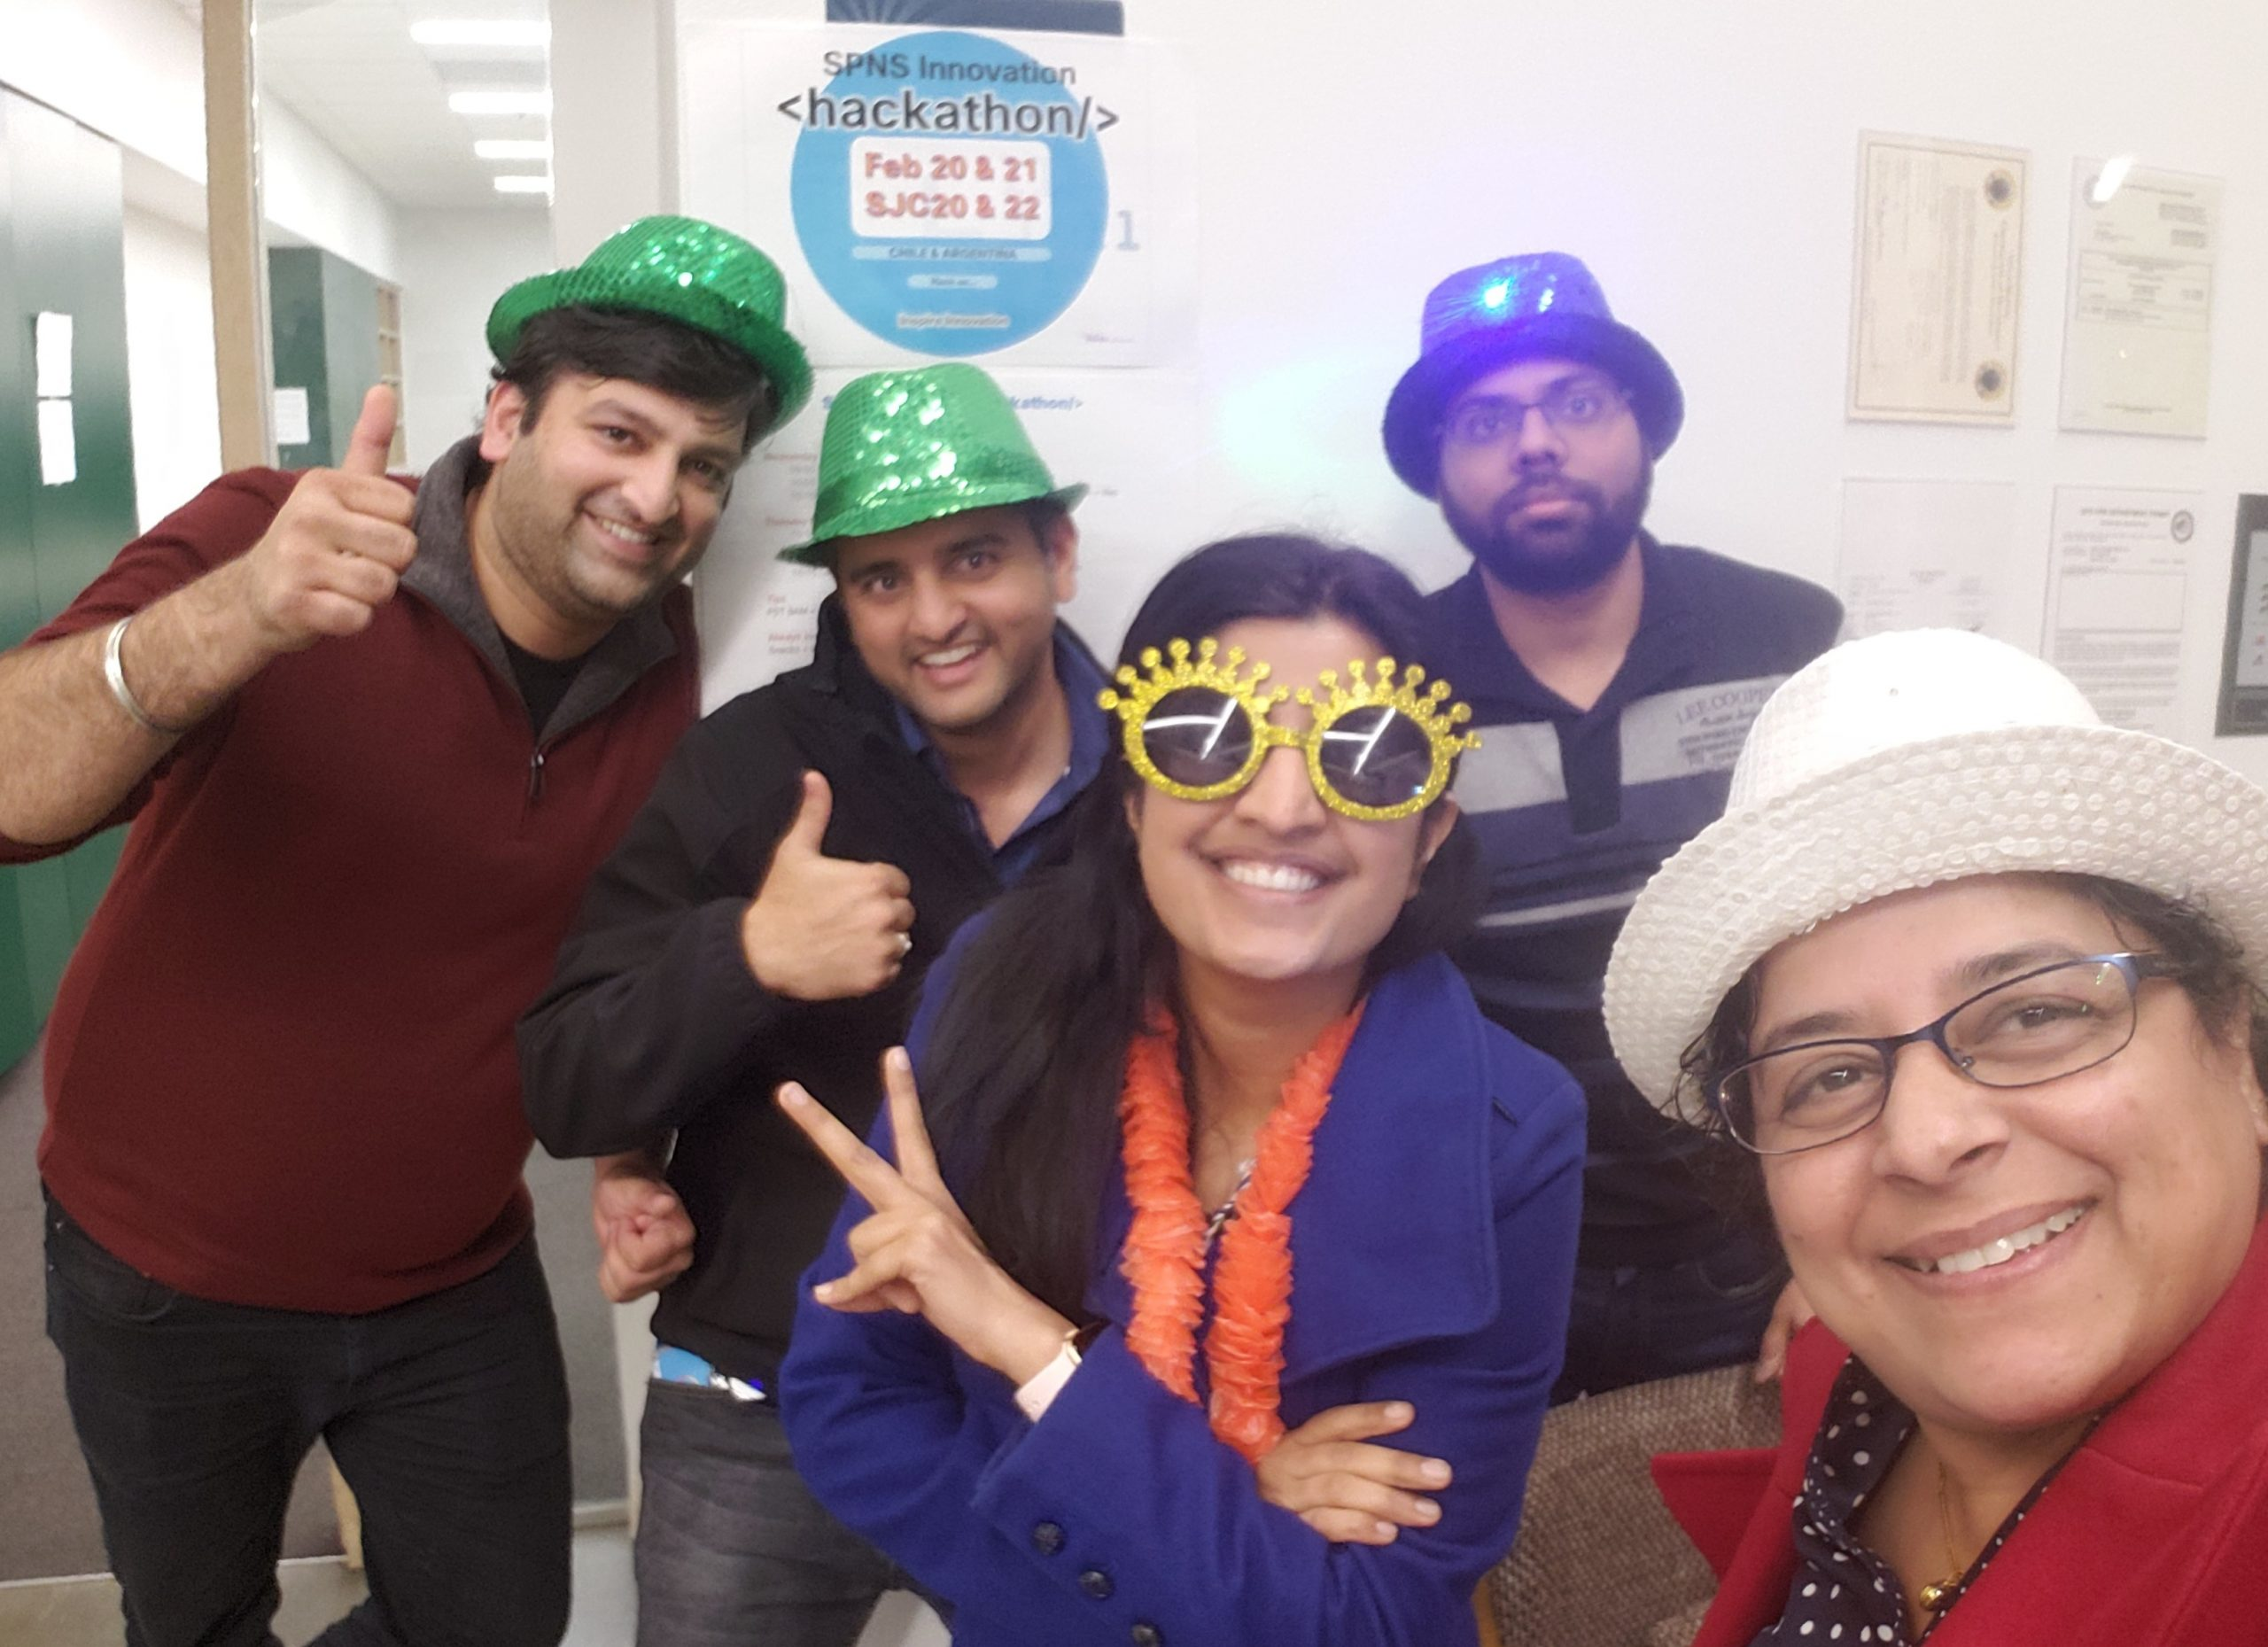 Rashmi and 4 of her peers wear silly hats and glasses under a SPNS Innocation Hackathon poster.